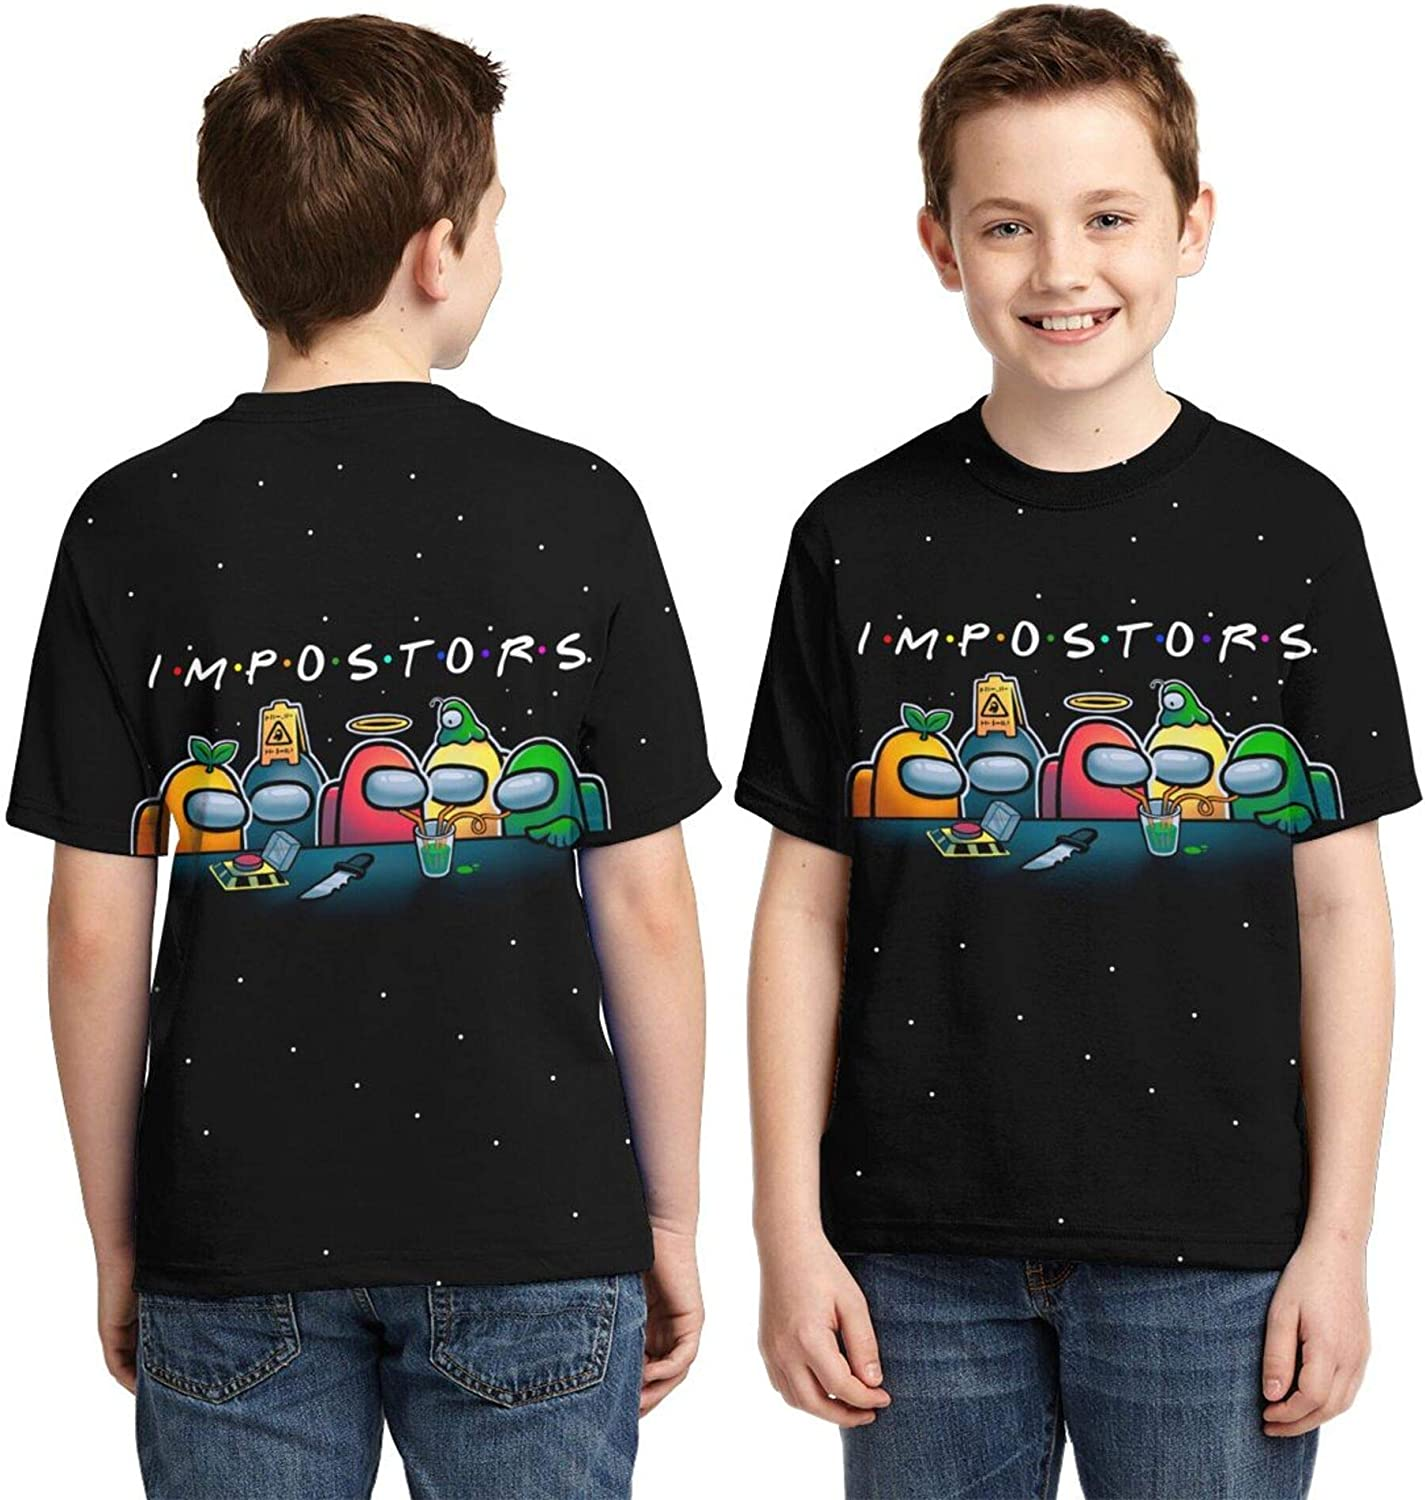 Kids' Novelty Shirt, Multiple Color Tshirt for Boys and Girls,Double-Sided 3D Printing